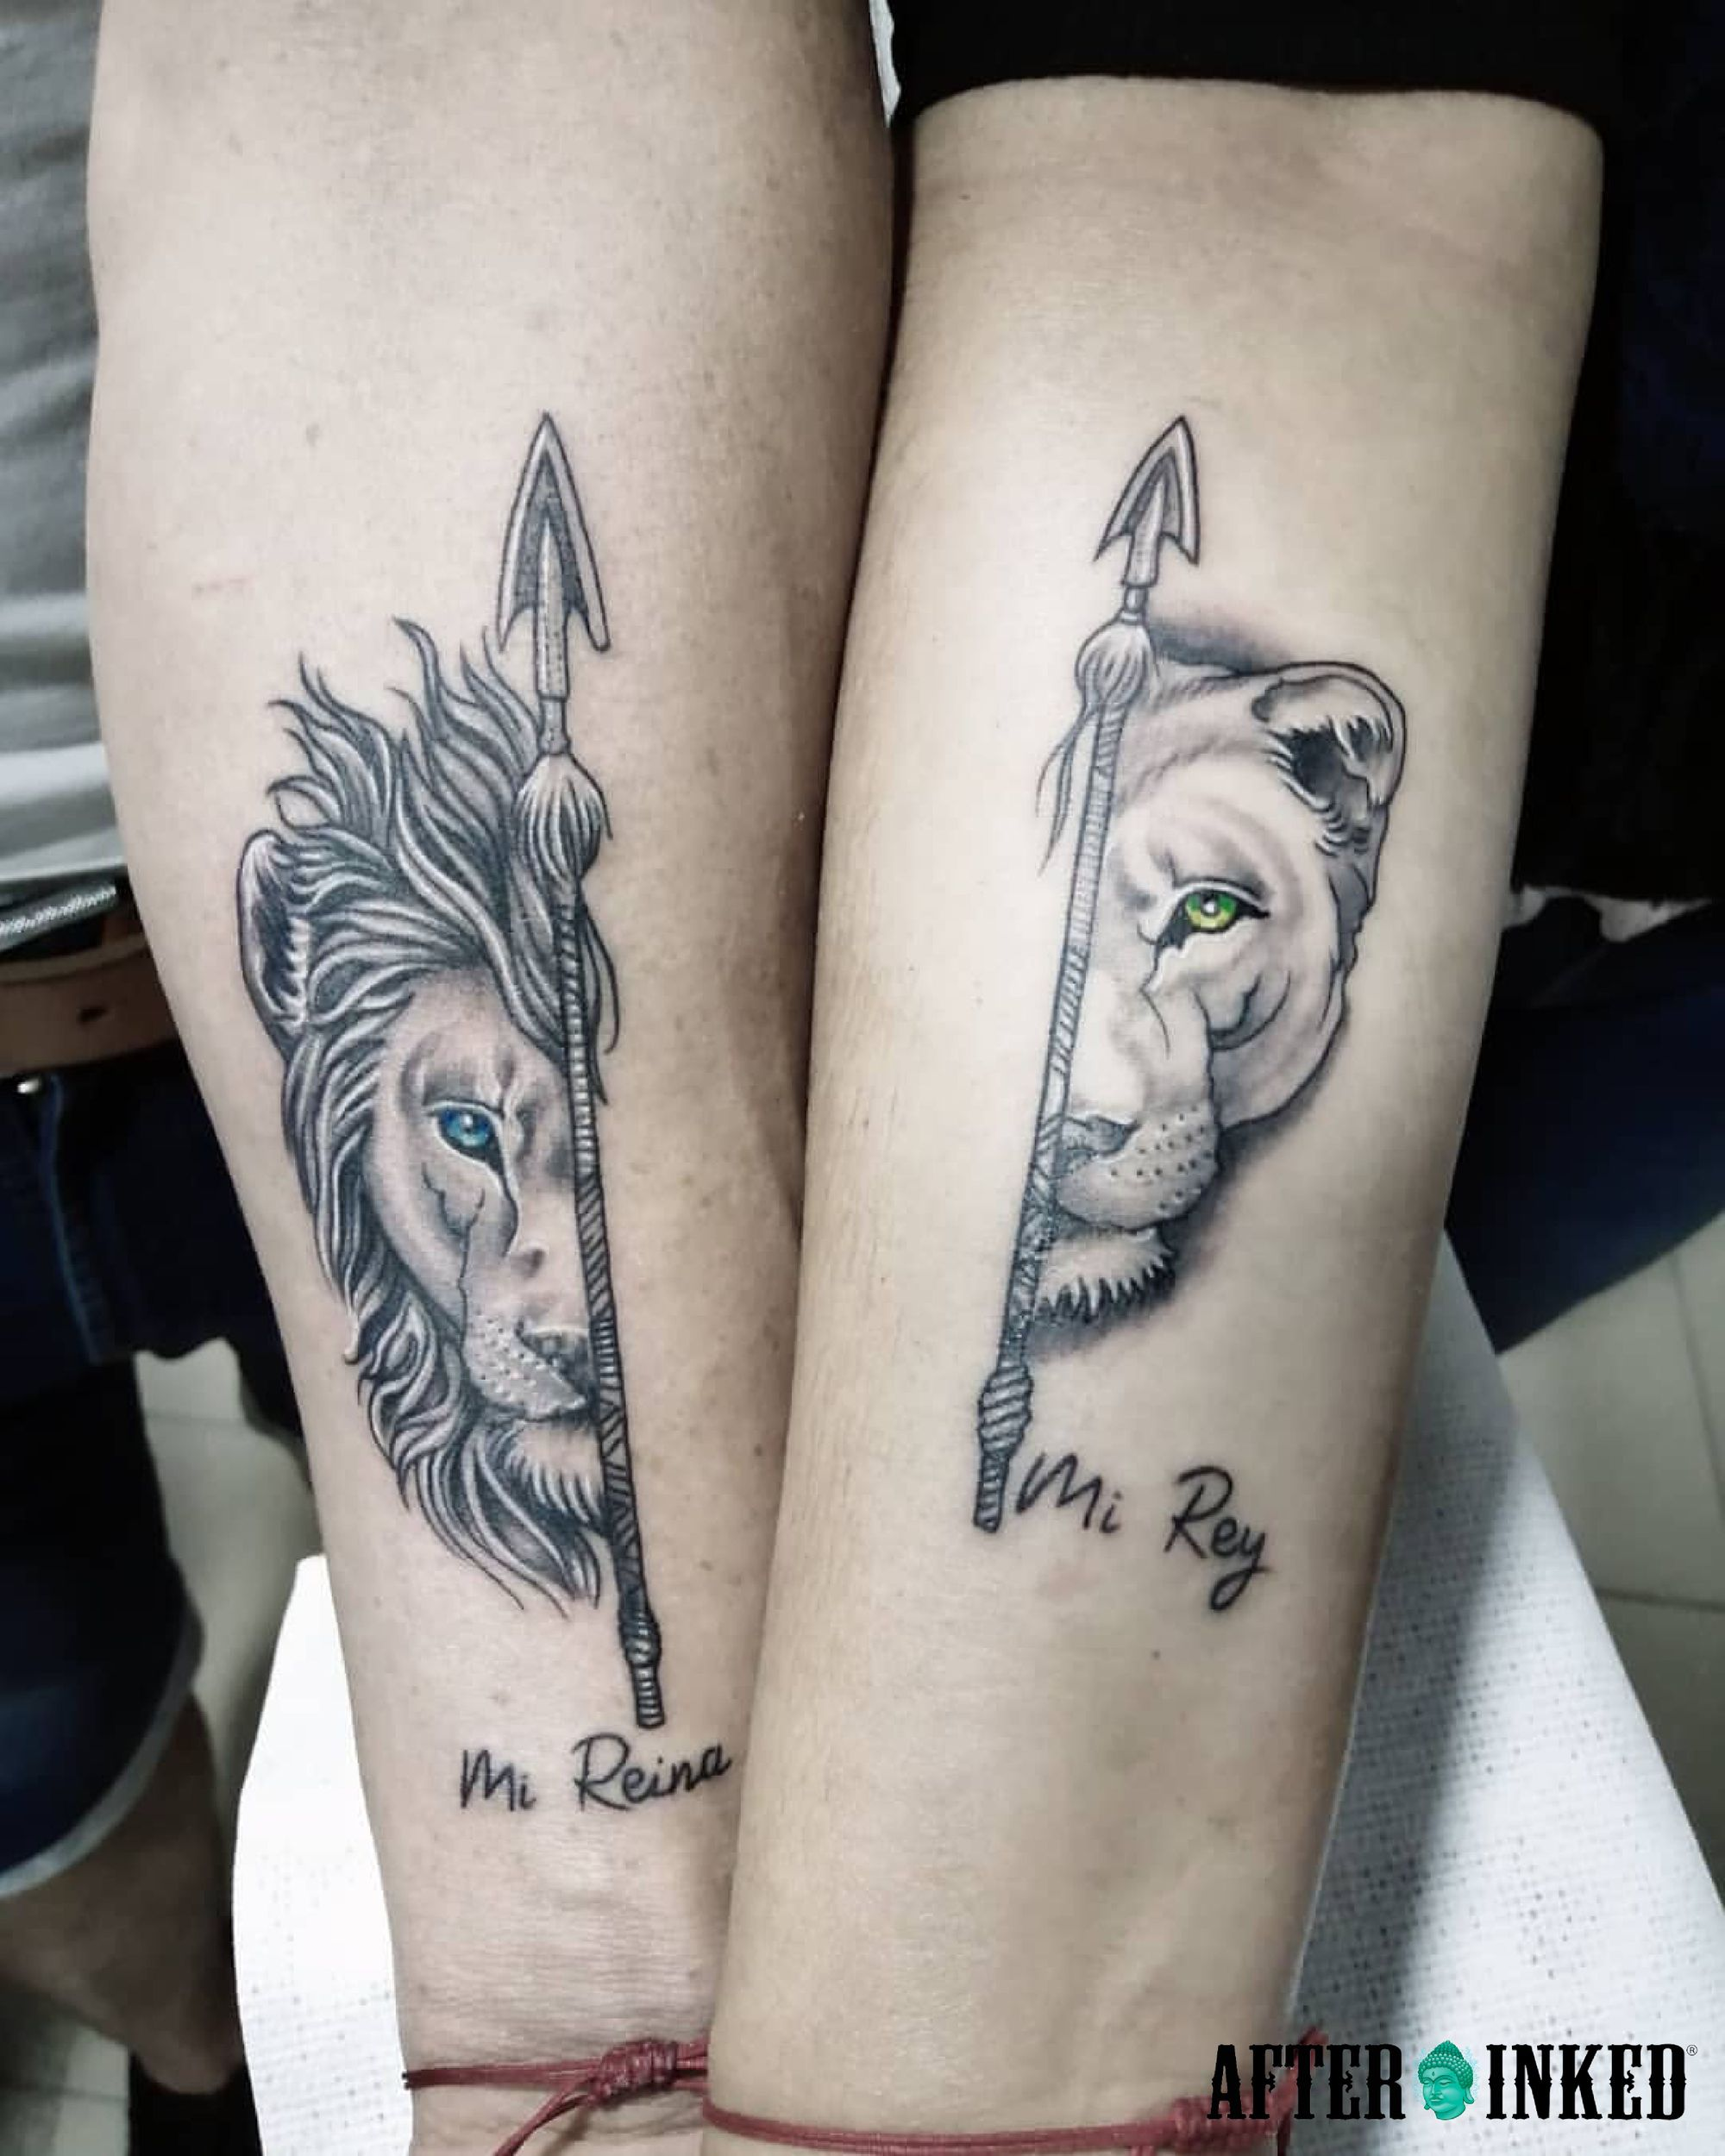 Pin by Faith on Tattoos in 2020 Animal tattoos, Tattoos